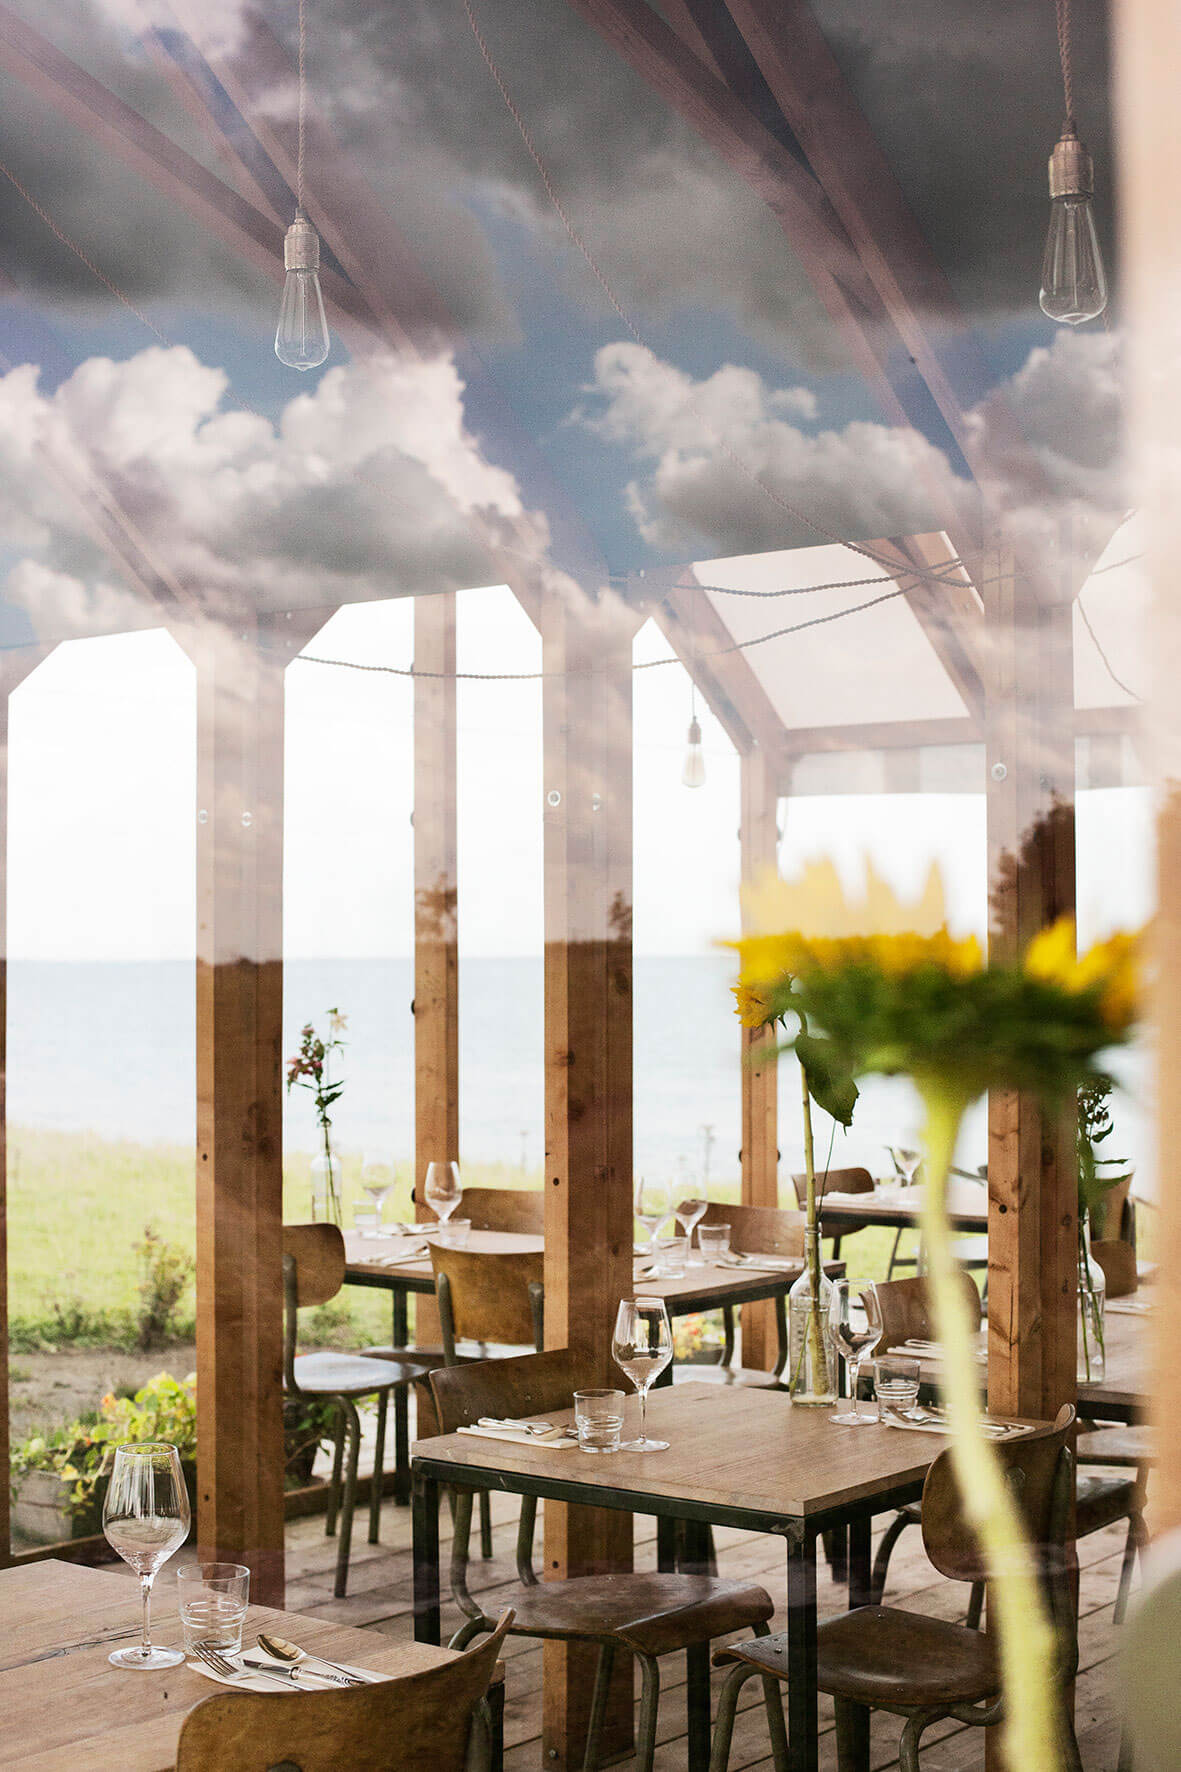 Zomerrestaurant-interieur-Rob-Becker_W